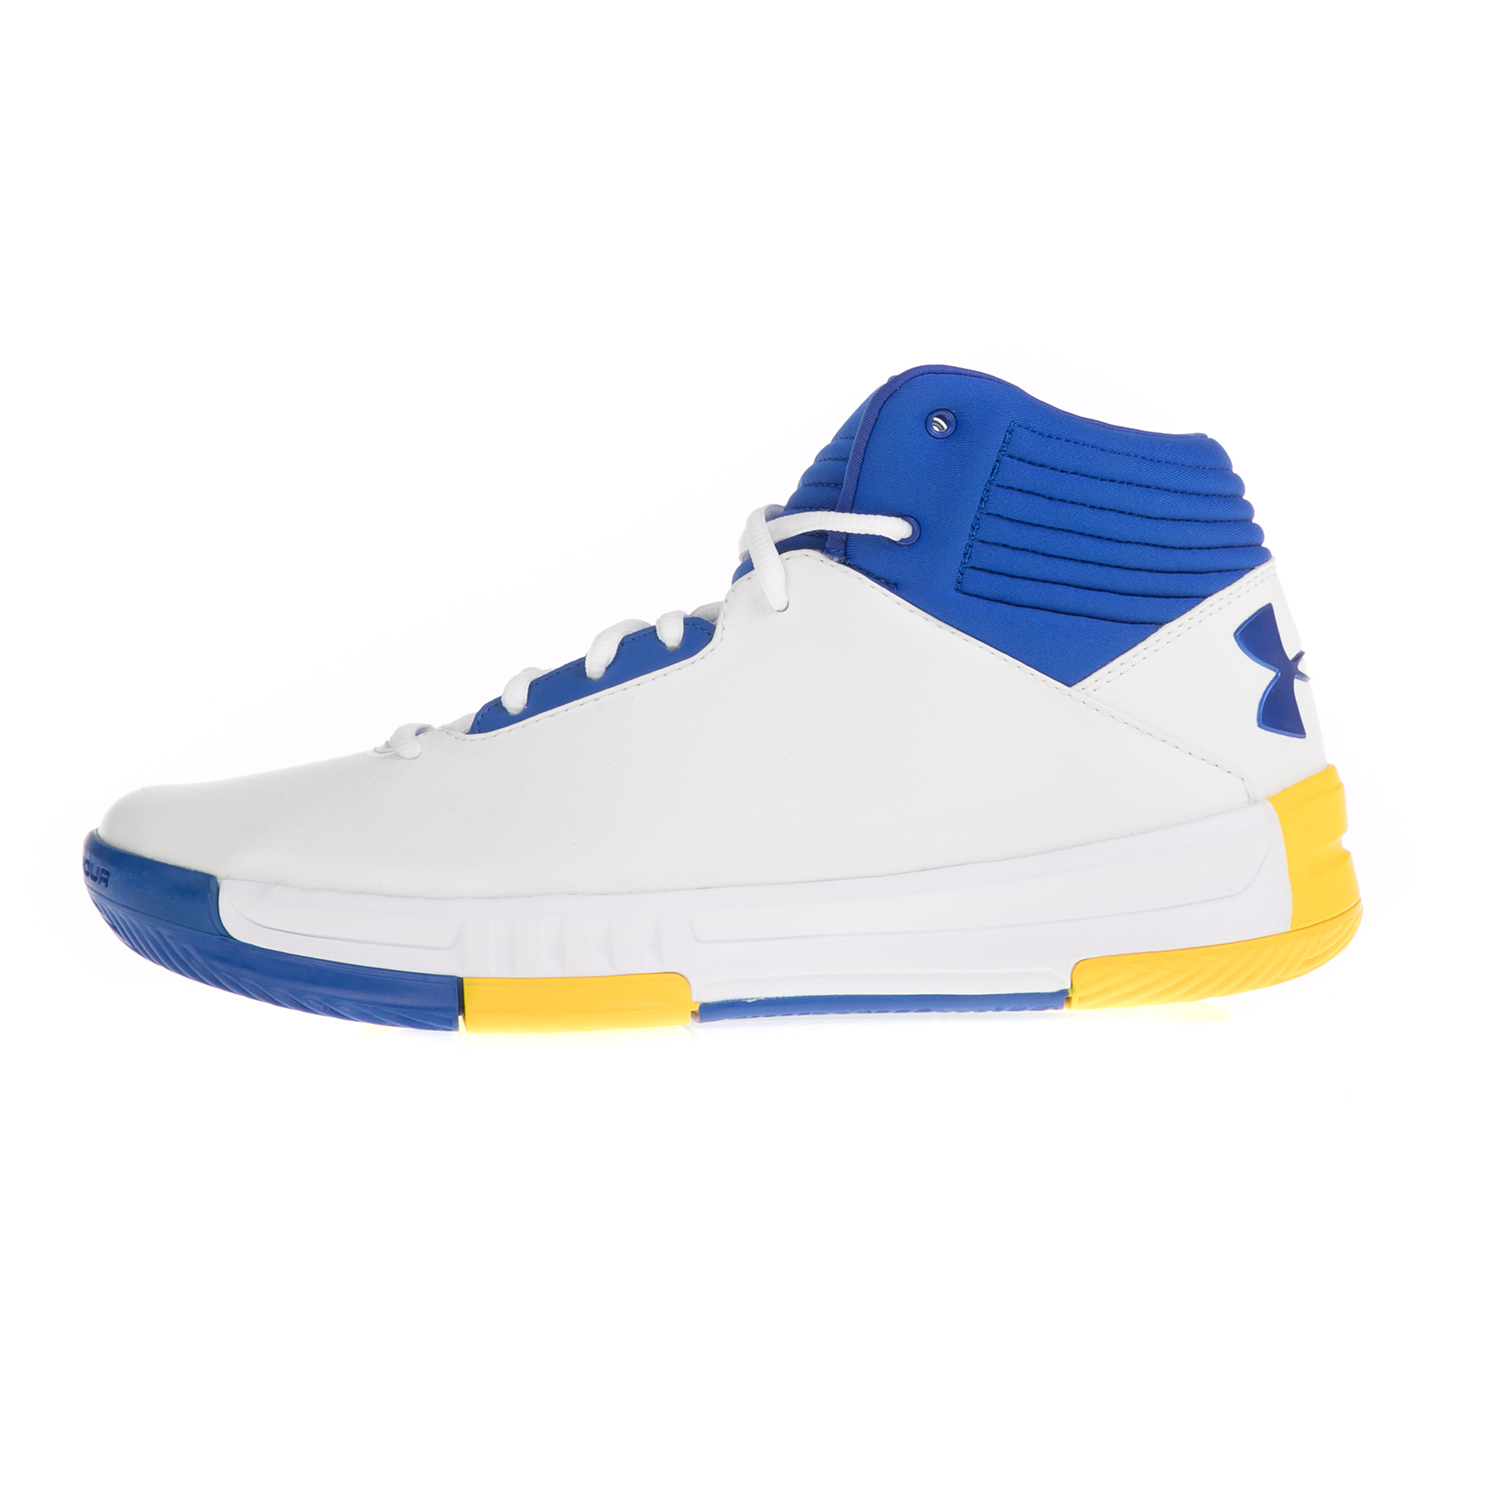 b43521d25cc -31% Factory Outlet UNDER ARMOUR – Ανδρικά παπούτσια UA LOCKDOWN 2 λευκά